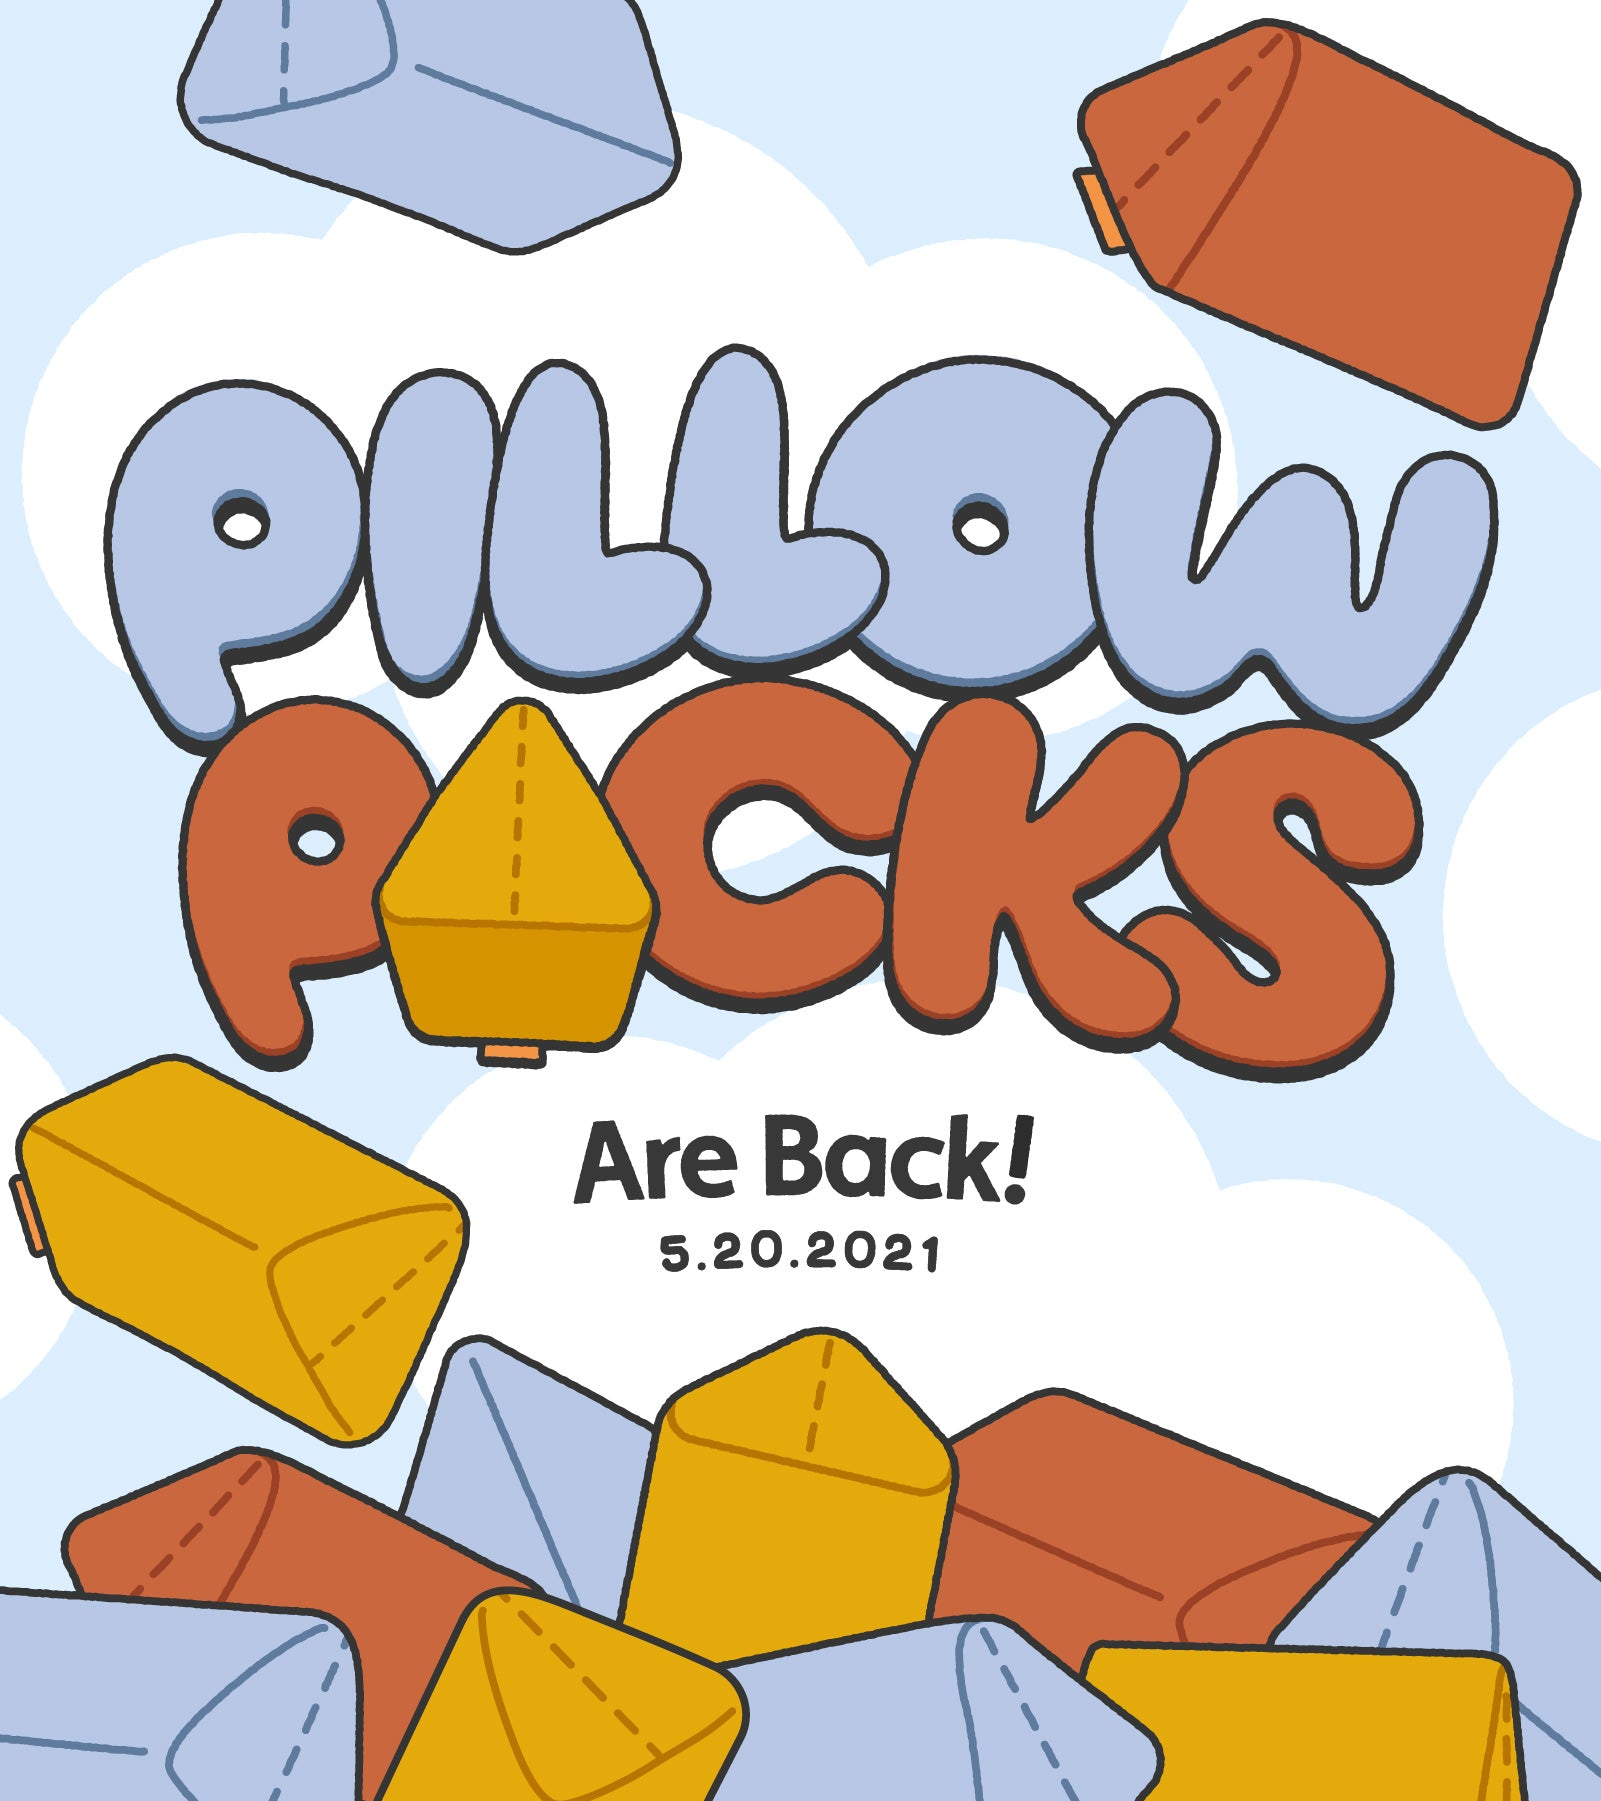 Pillow Packs are back! May 20 2021